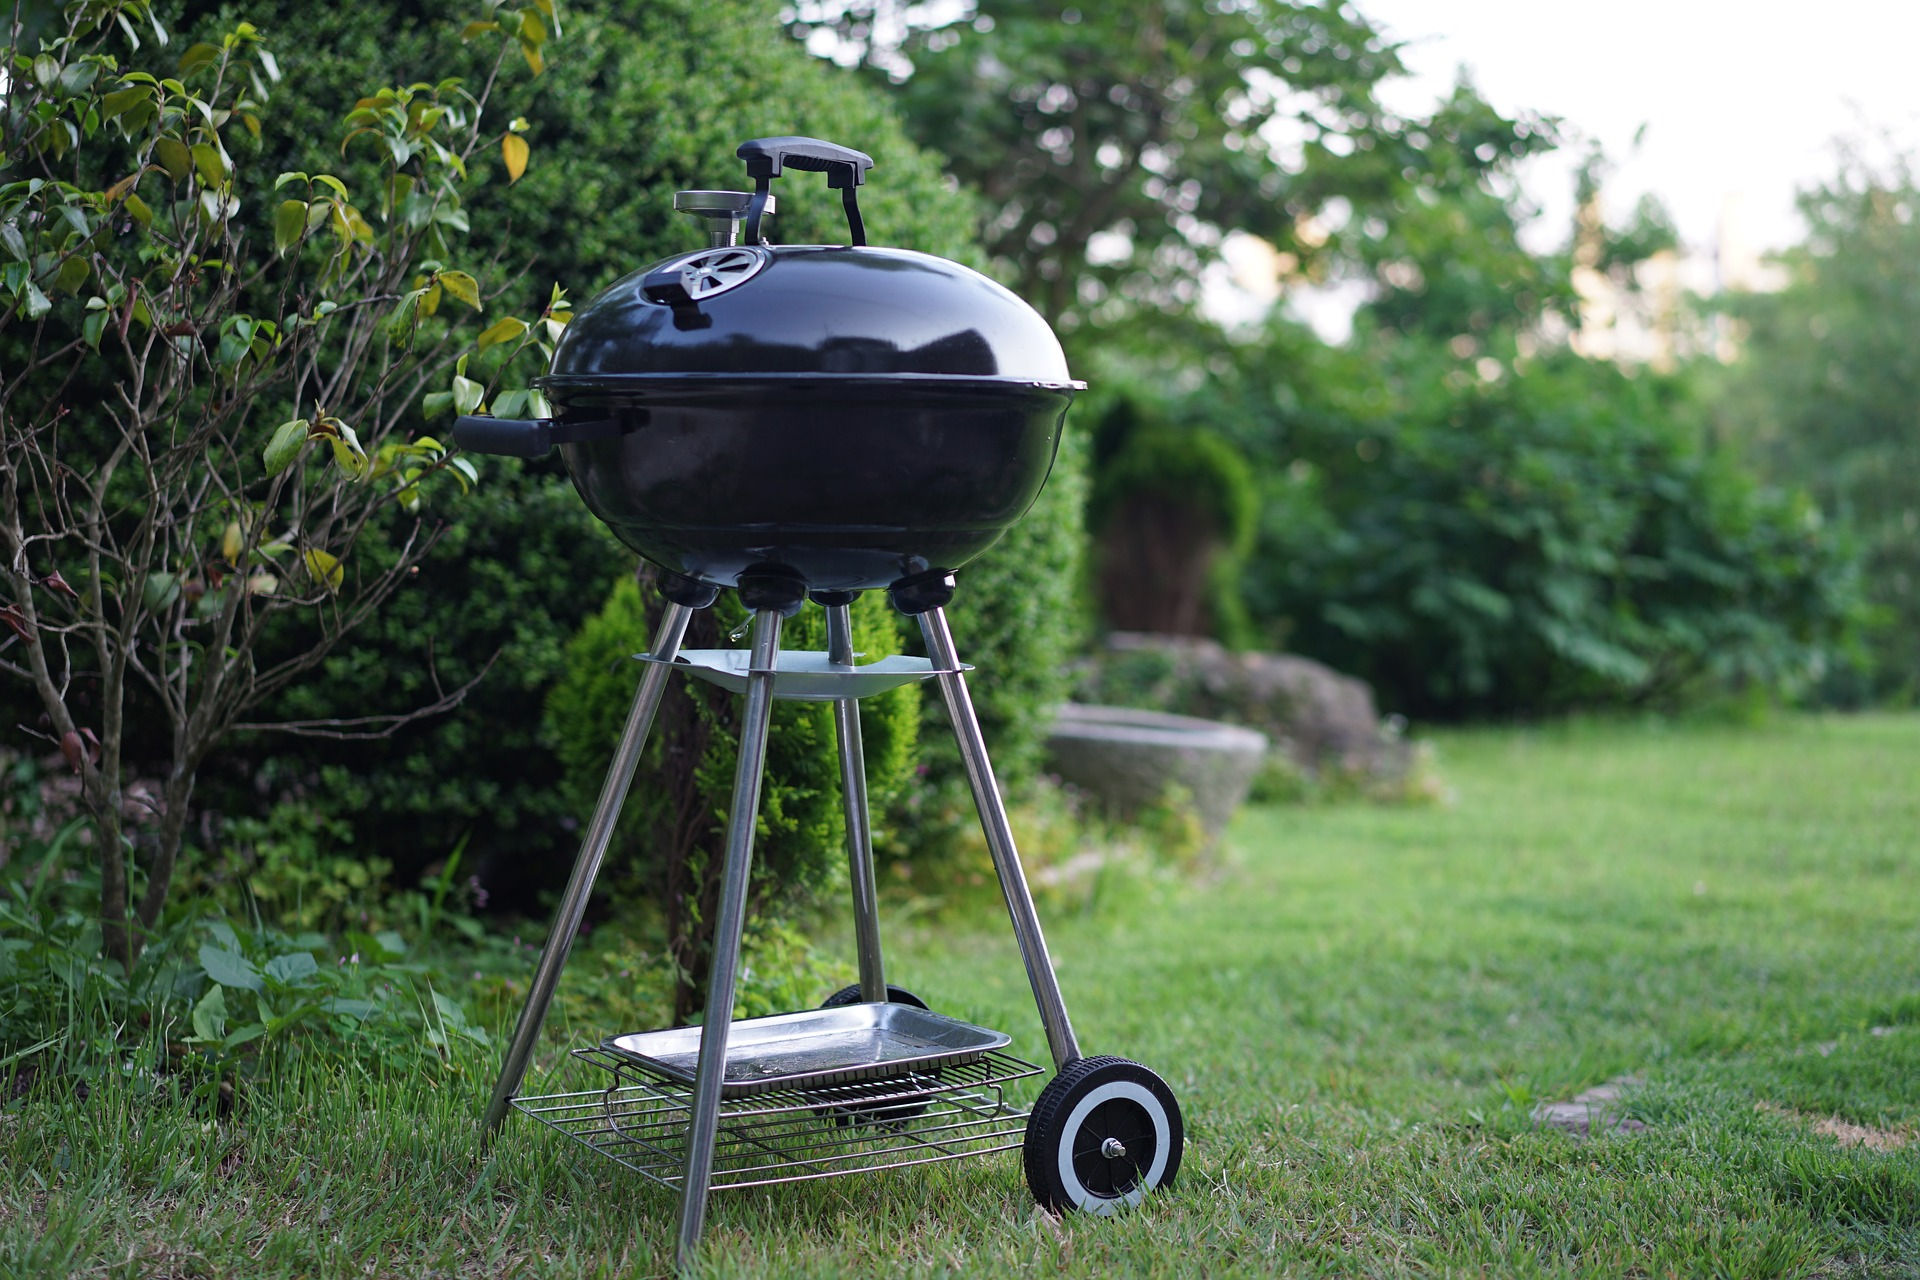 The Grill Recipe You can Prepare at your Backyard